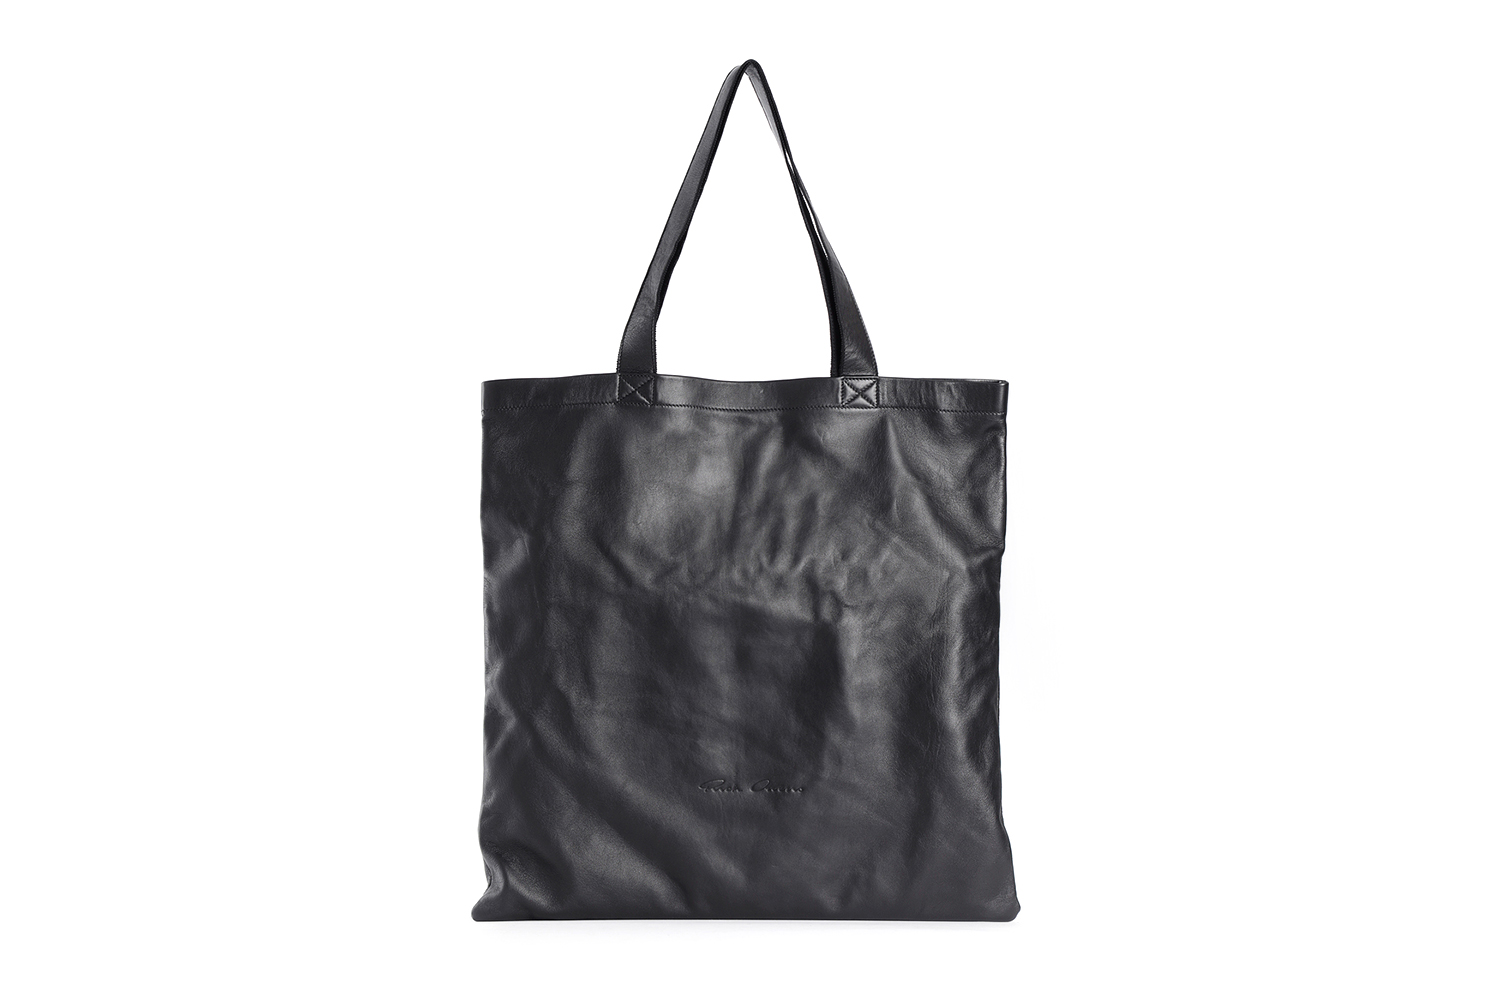 rick owens fall/winter 2018 leather tote bag